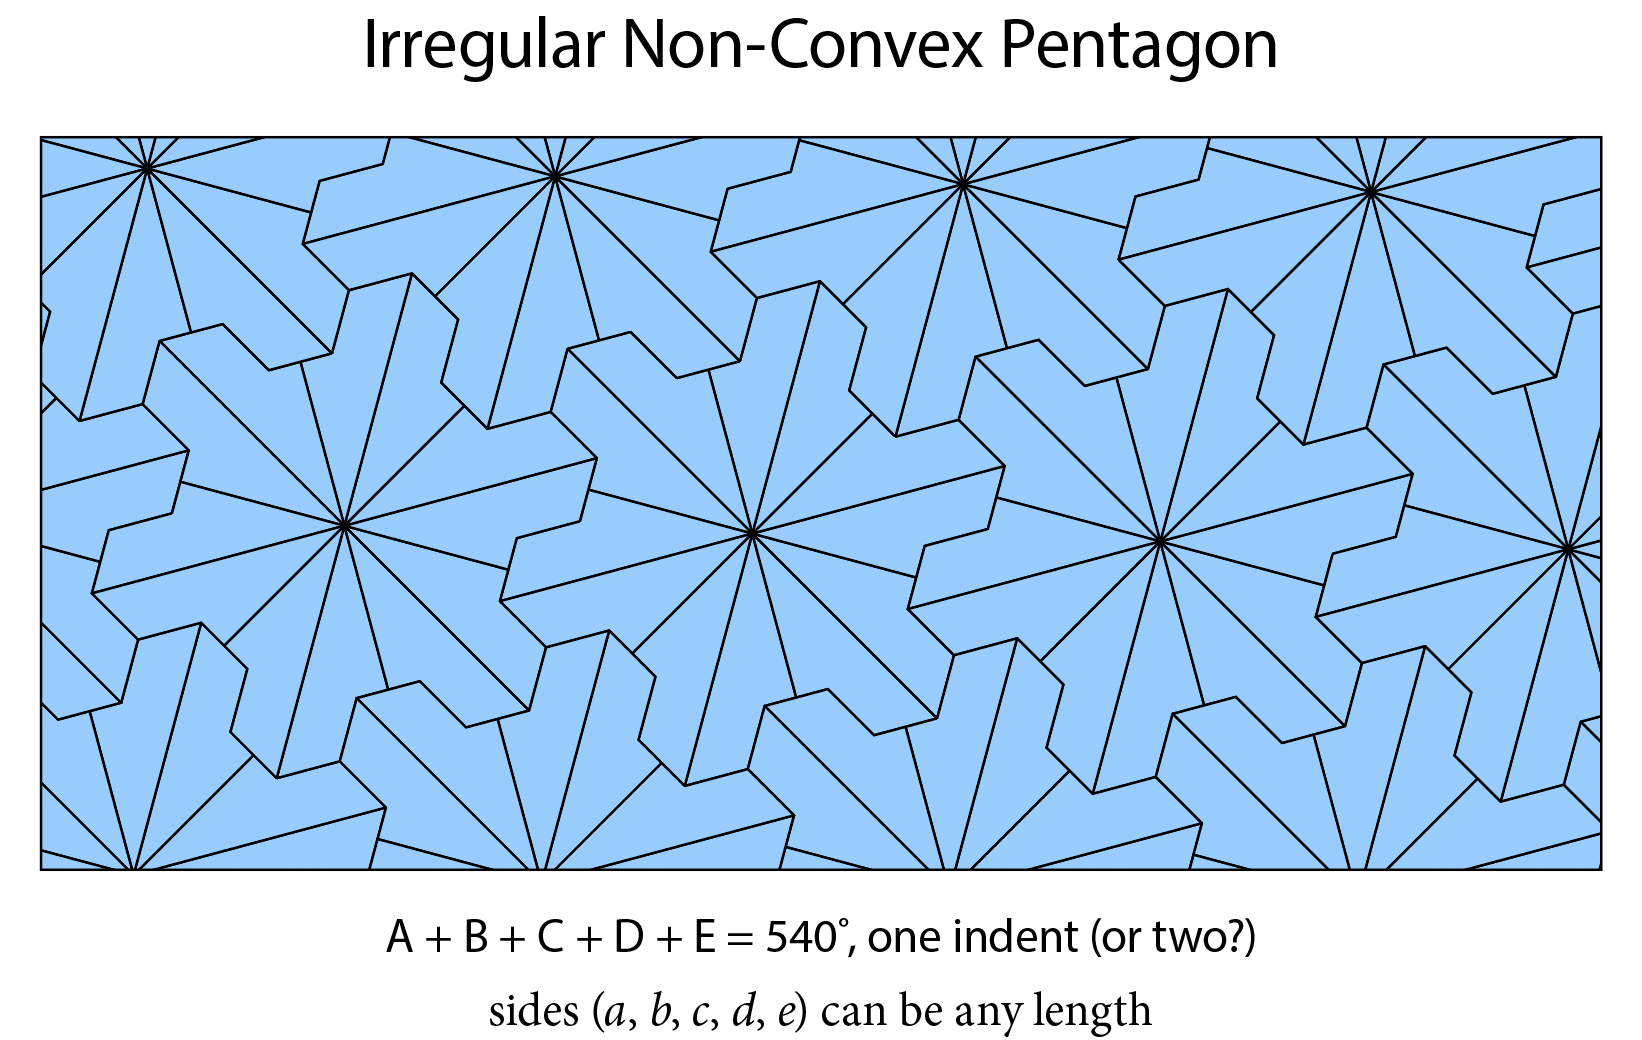 Irregular non-convex pentagon tesselation